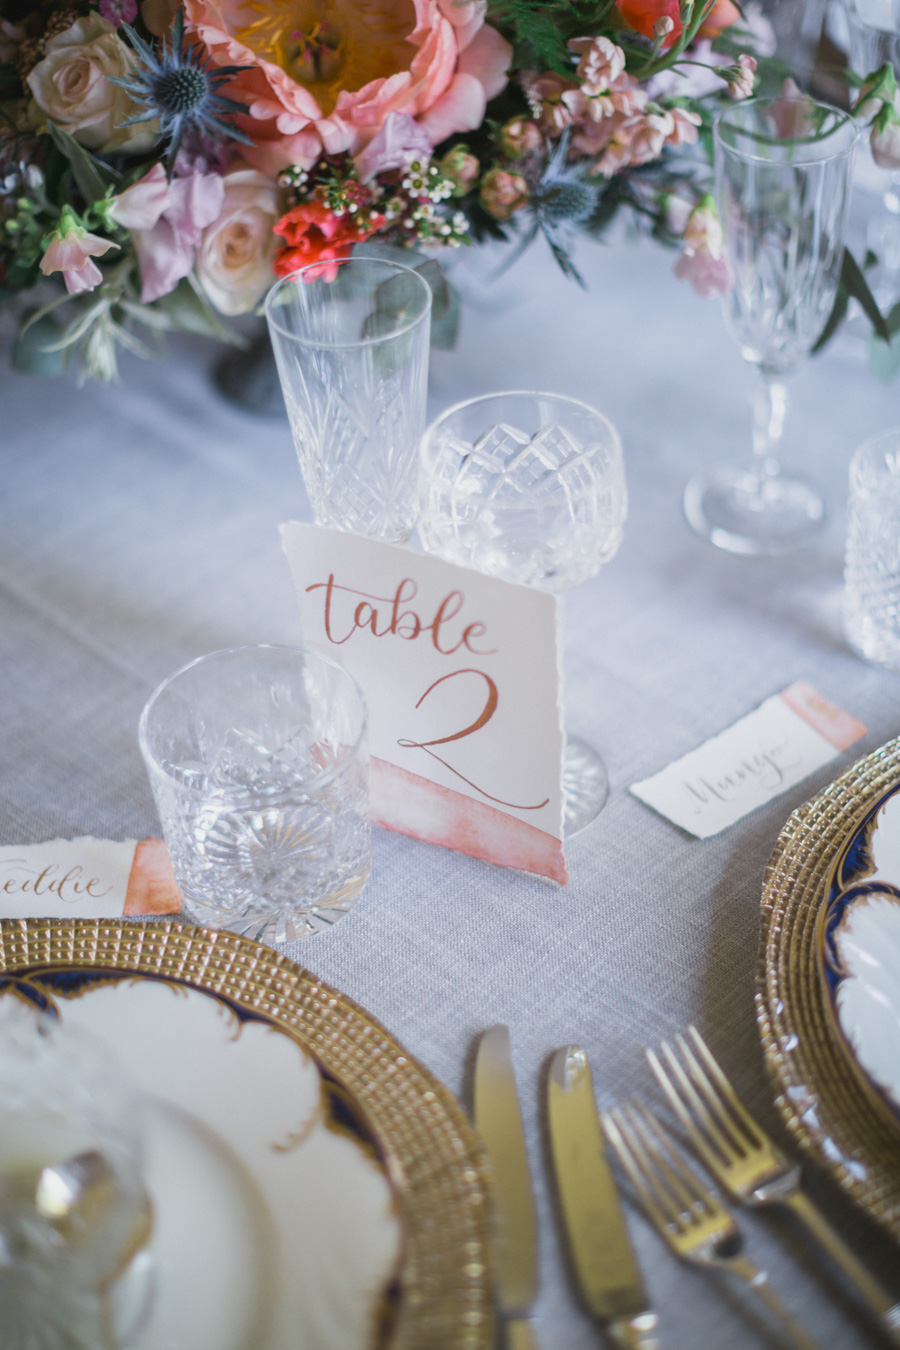 Divine wedding styling with English country garden florals at Pauntley Court, photo credit Red Maple Photography (11)